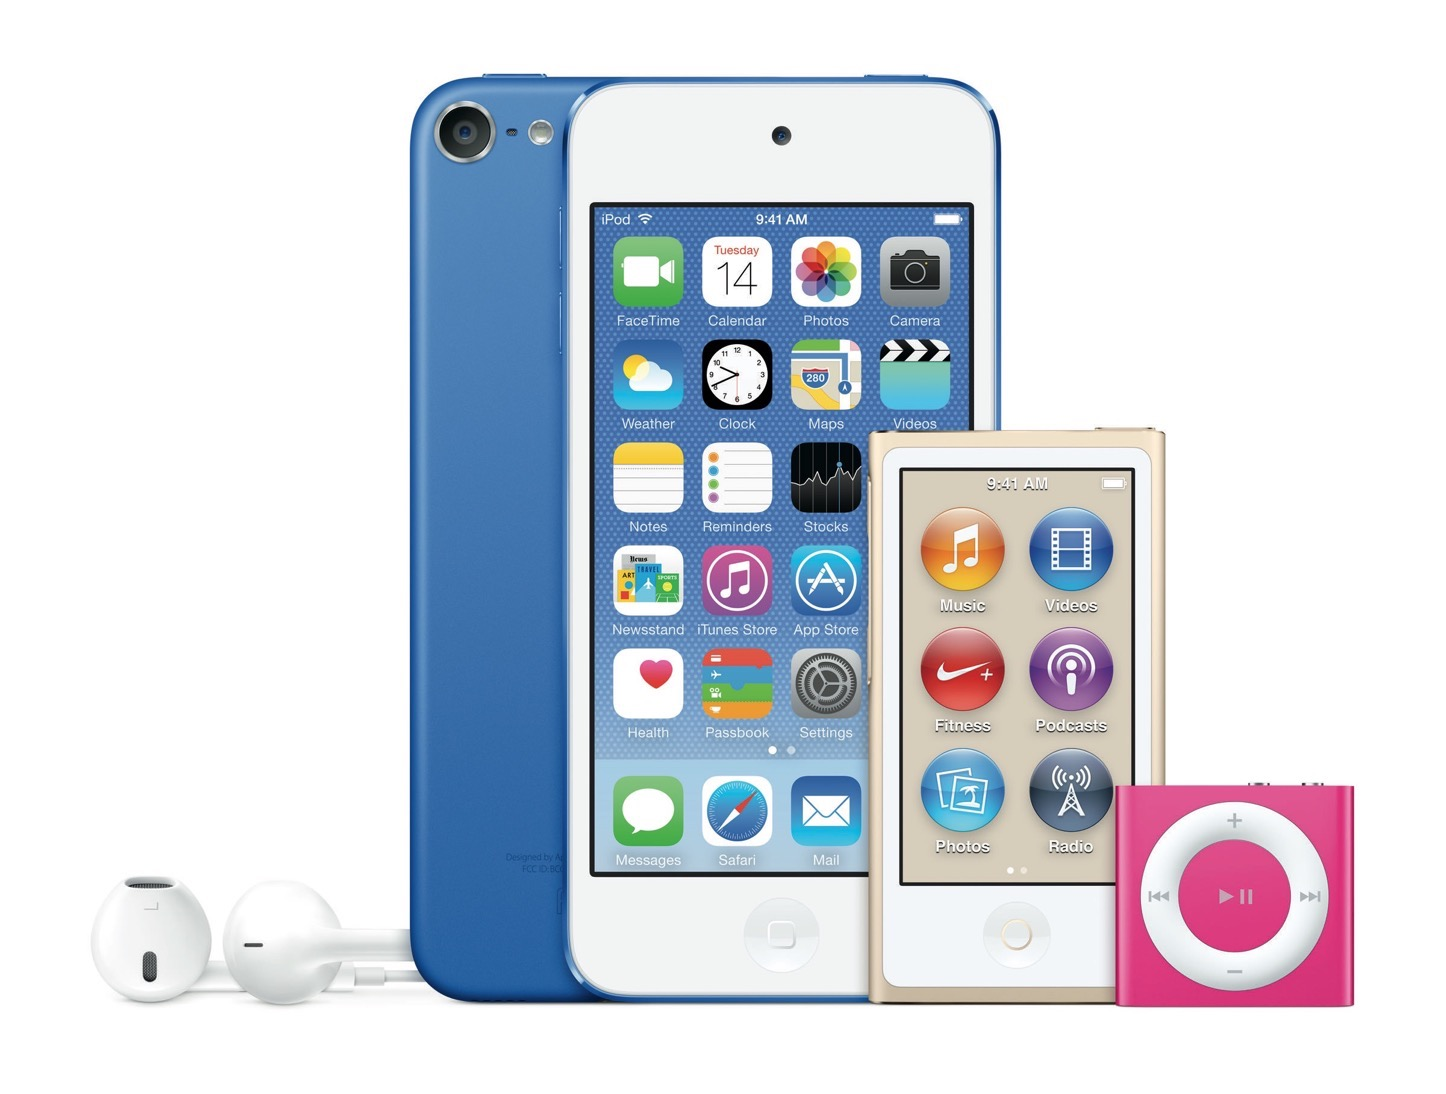 New iPod Series